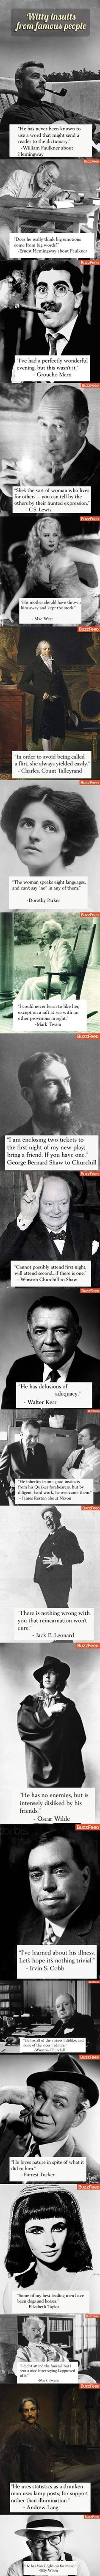 Witty insults from famous people.